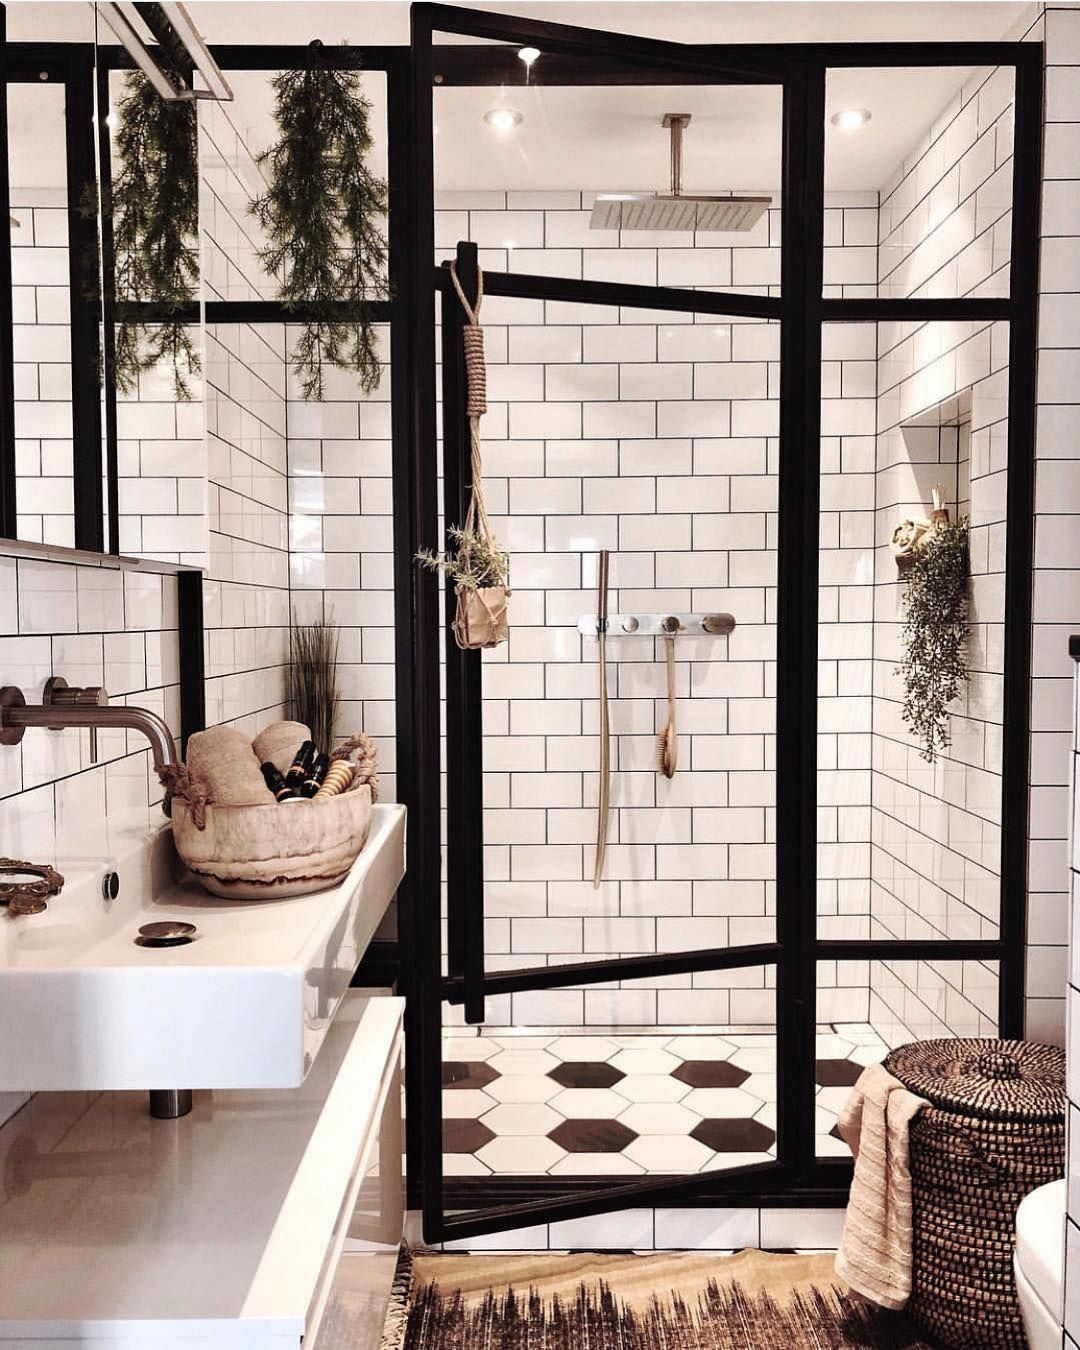 A Bathroom Of Our Dreams The Black And White Colors Make A Stunning Combo Via Andrea Groot Tiny House Bathroom Bathroom Inspiration Retro Home Decor